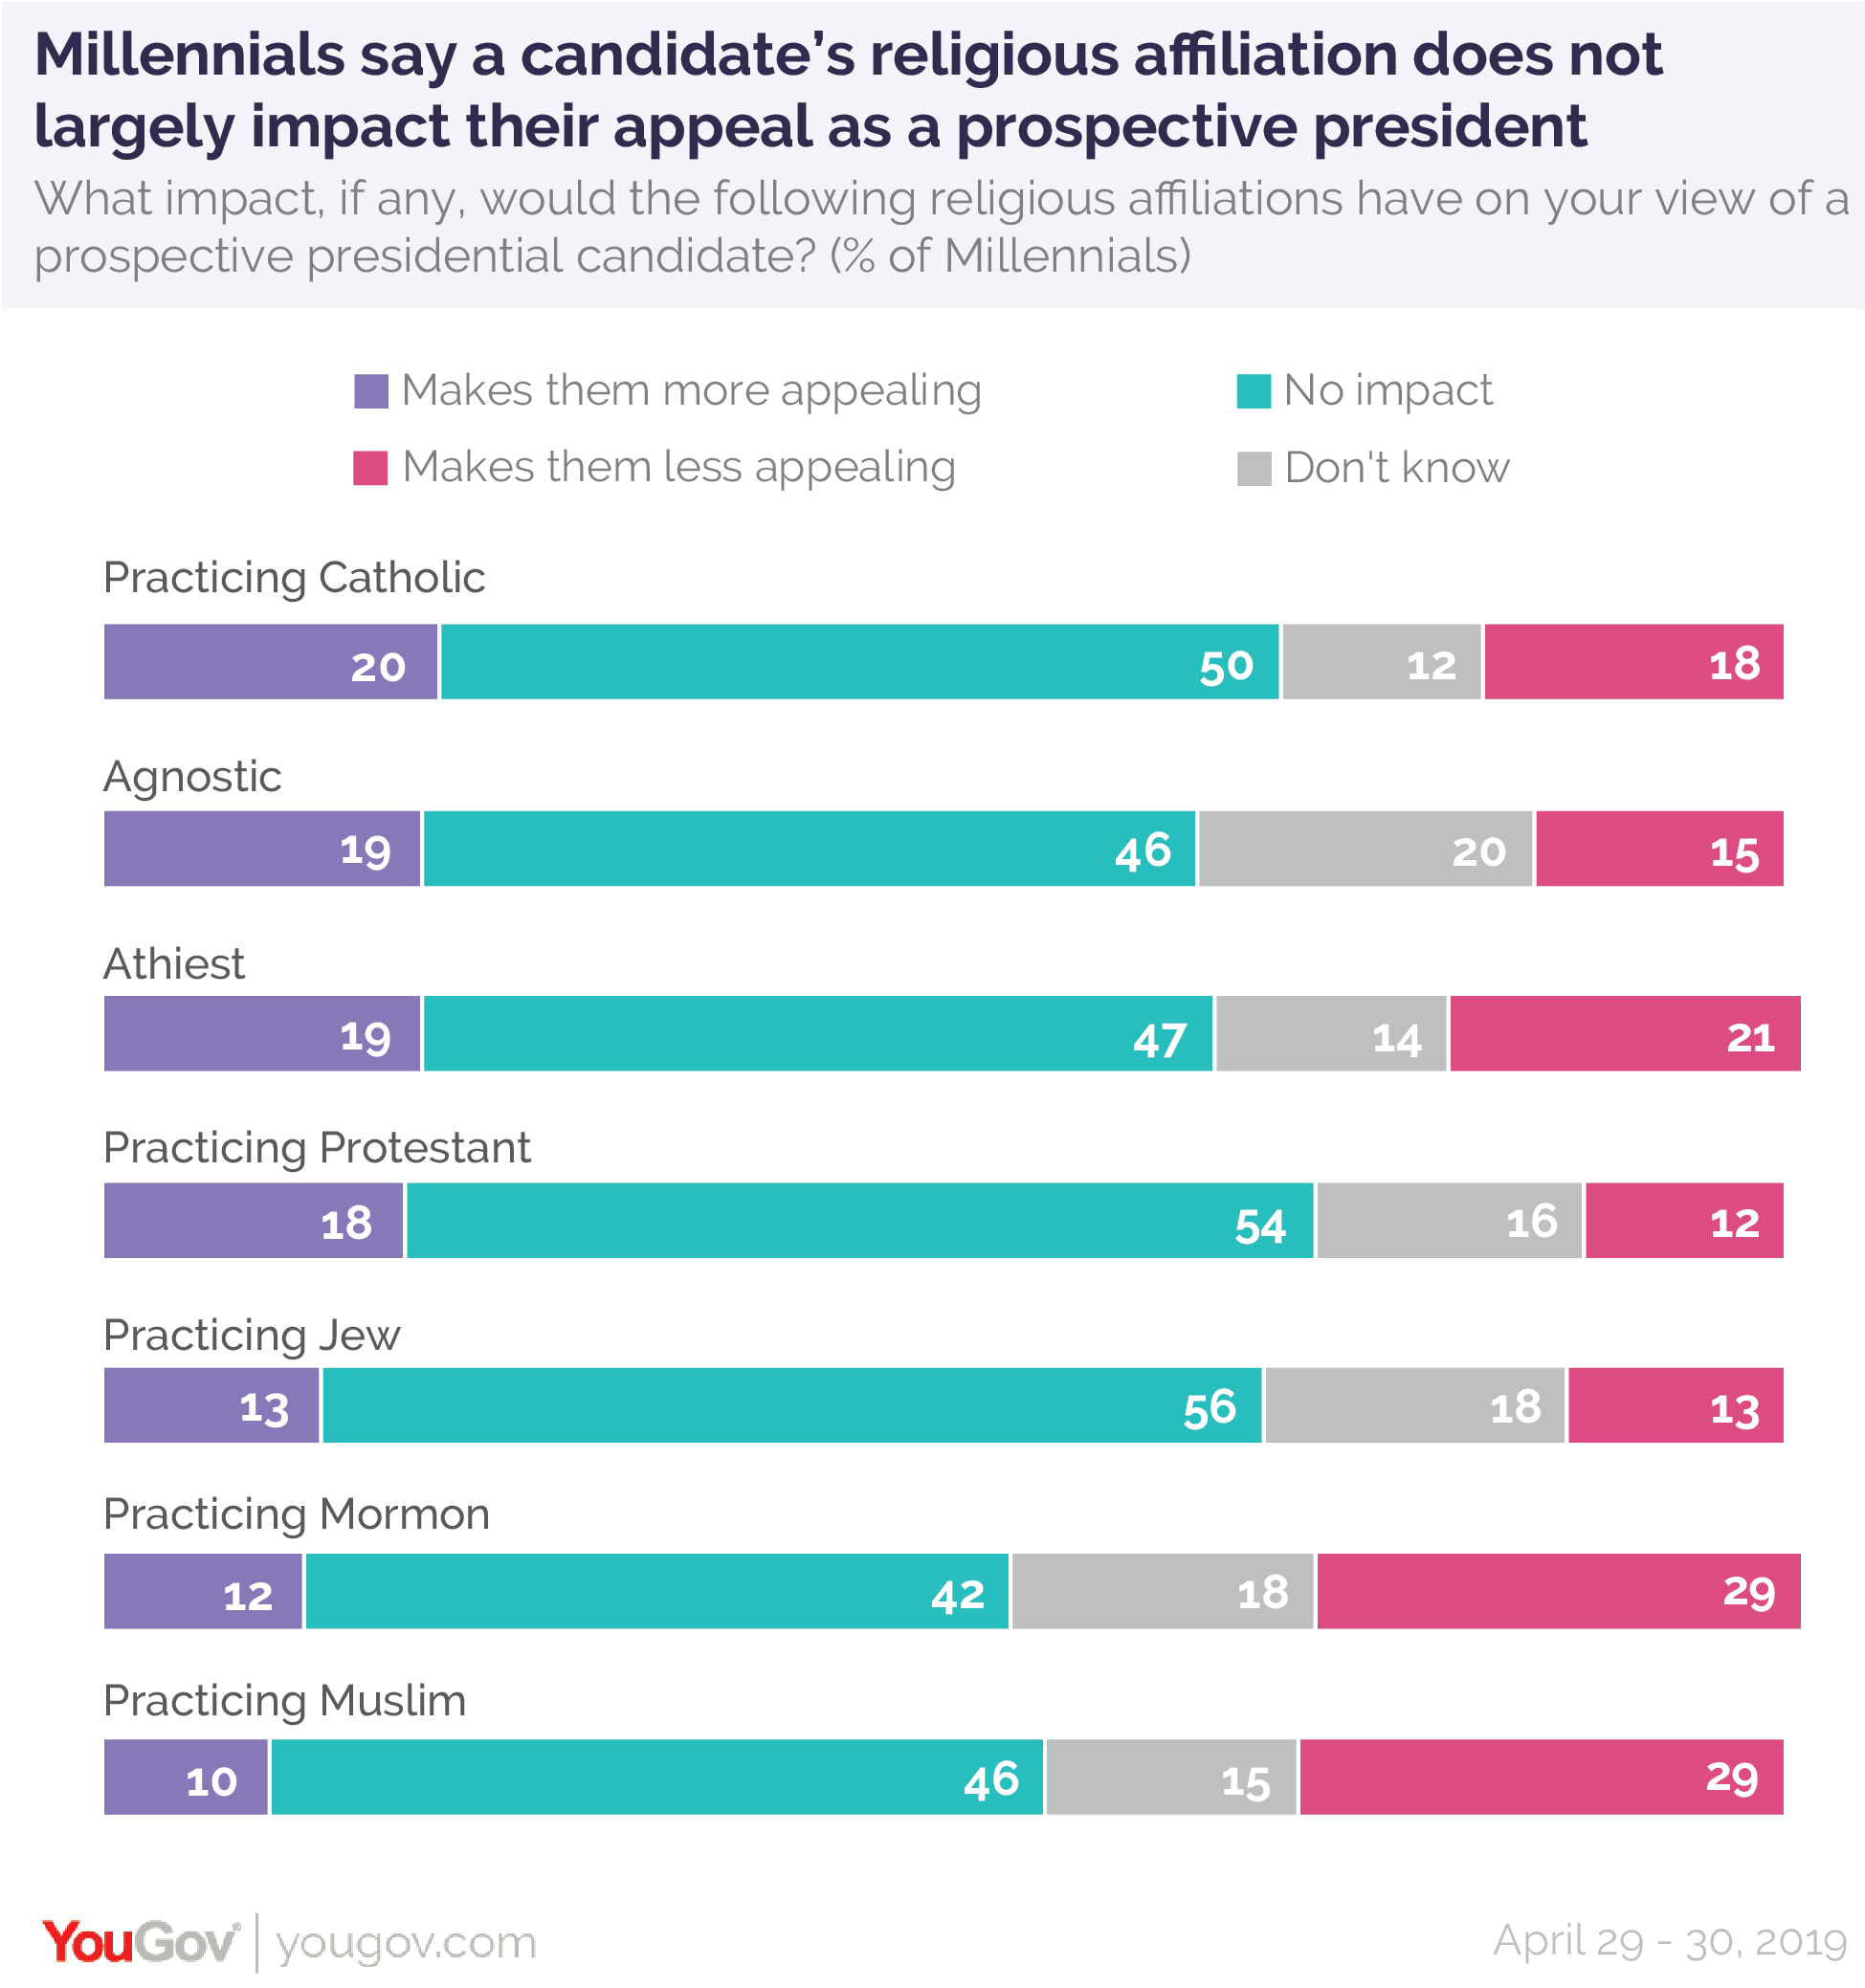 Millennials say a candidate's religious affiliation does not impact their appeal as a prospective president